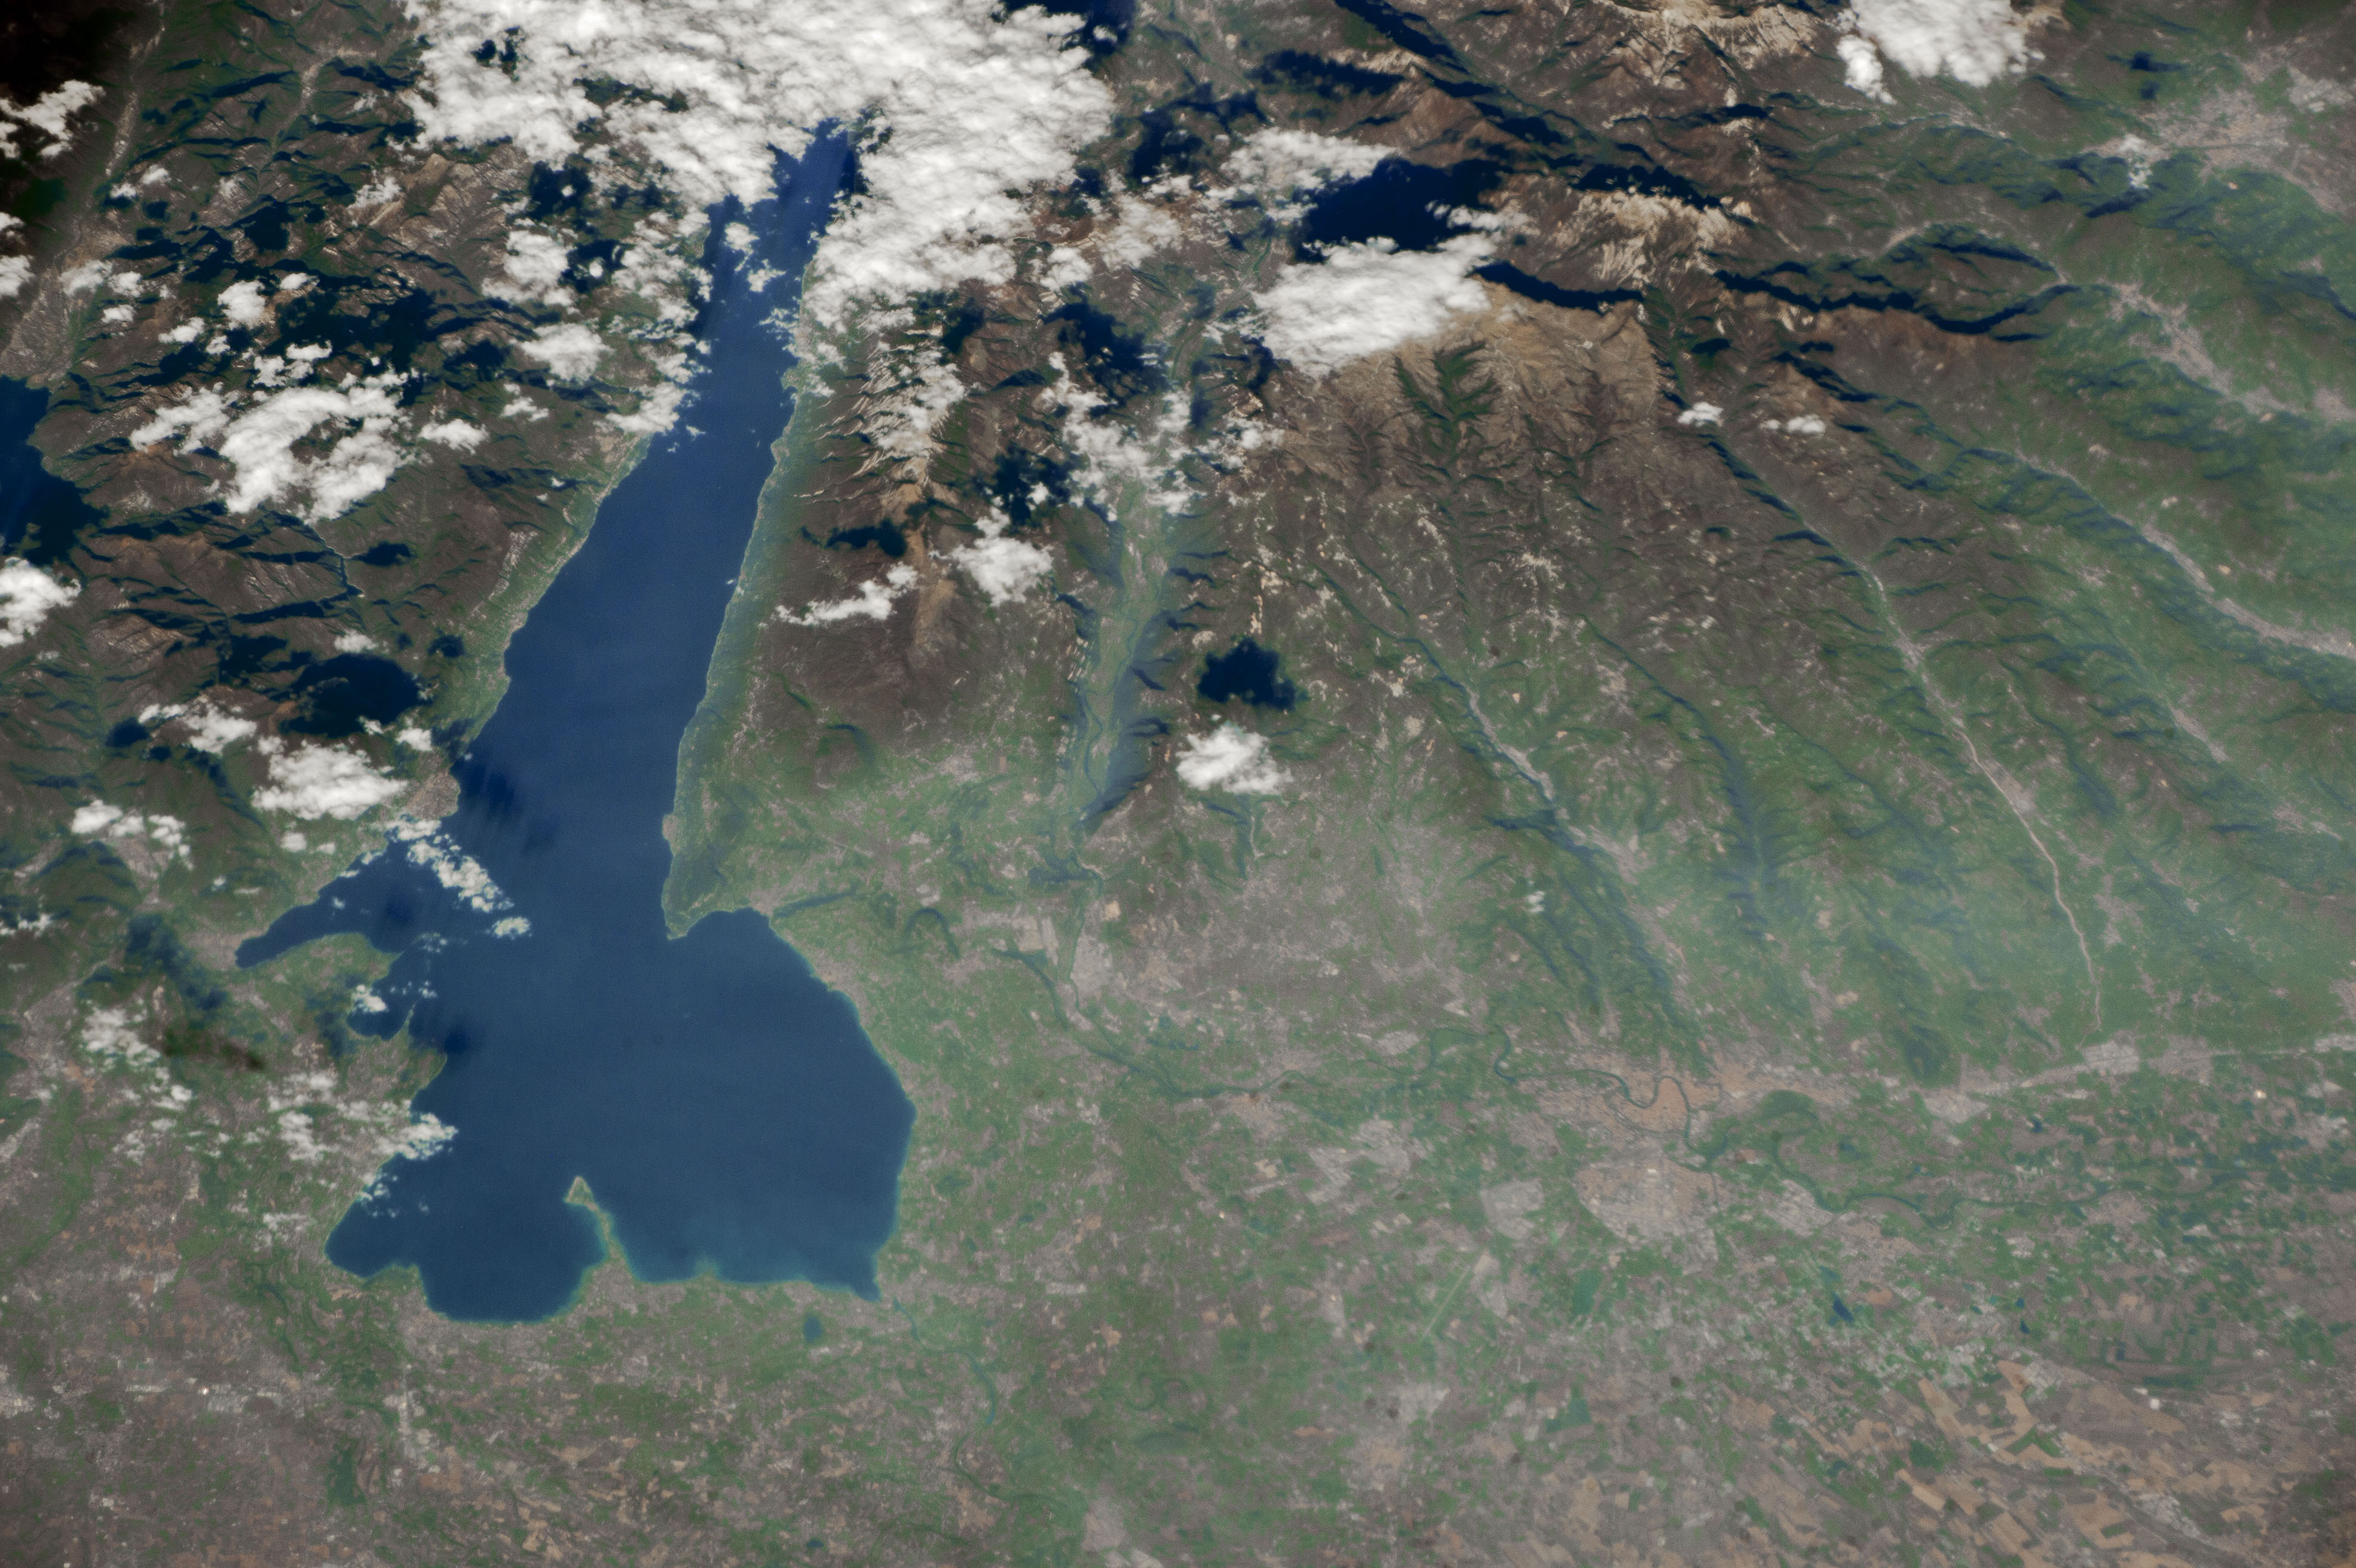 Today's Image of the Day comes from the NASA Earth Observatory and features a look at Lake Garda, the largest lake in the country of Italy.